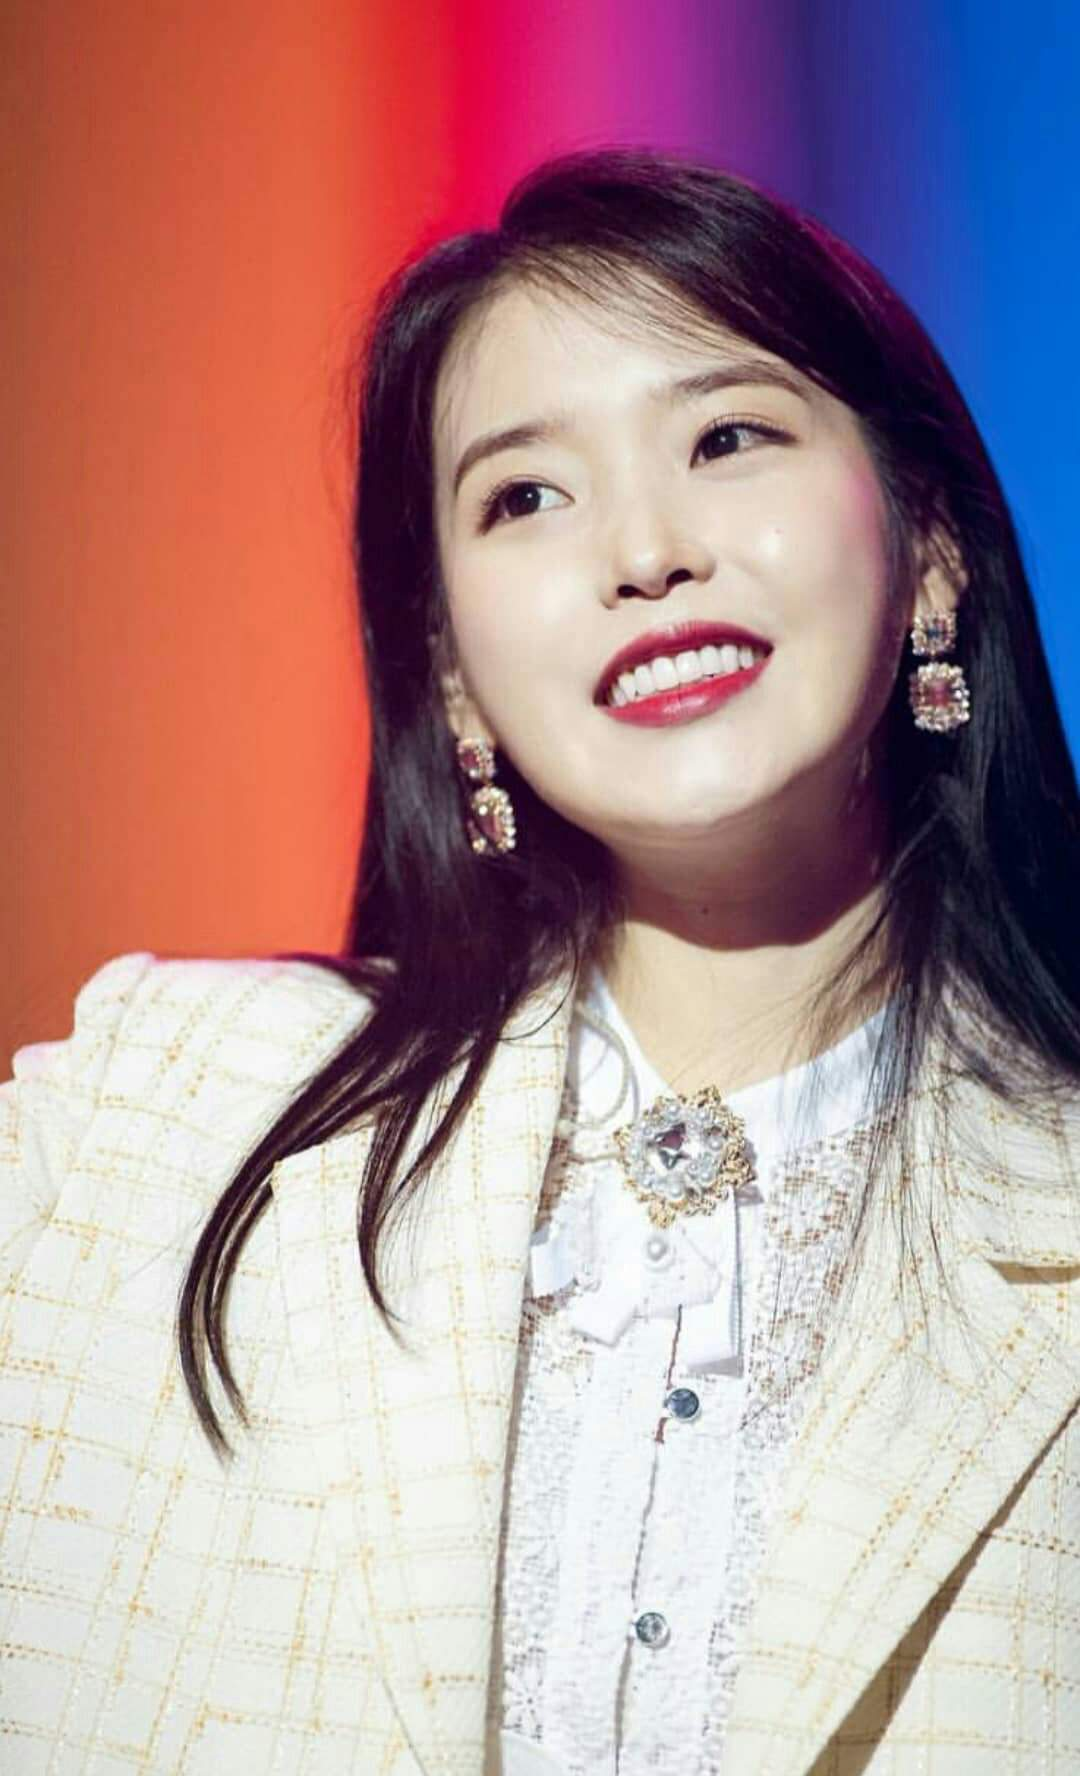 [Updated] Rumors of YG manager scamming Black Pinks Lisa